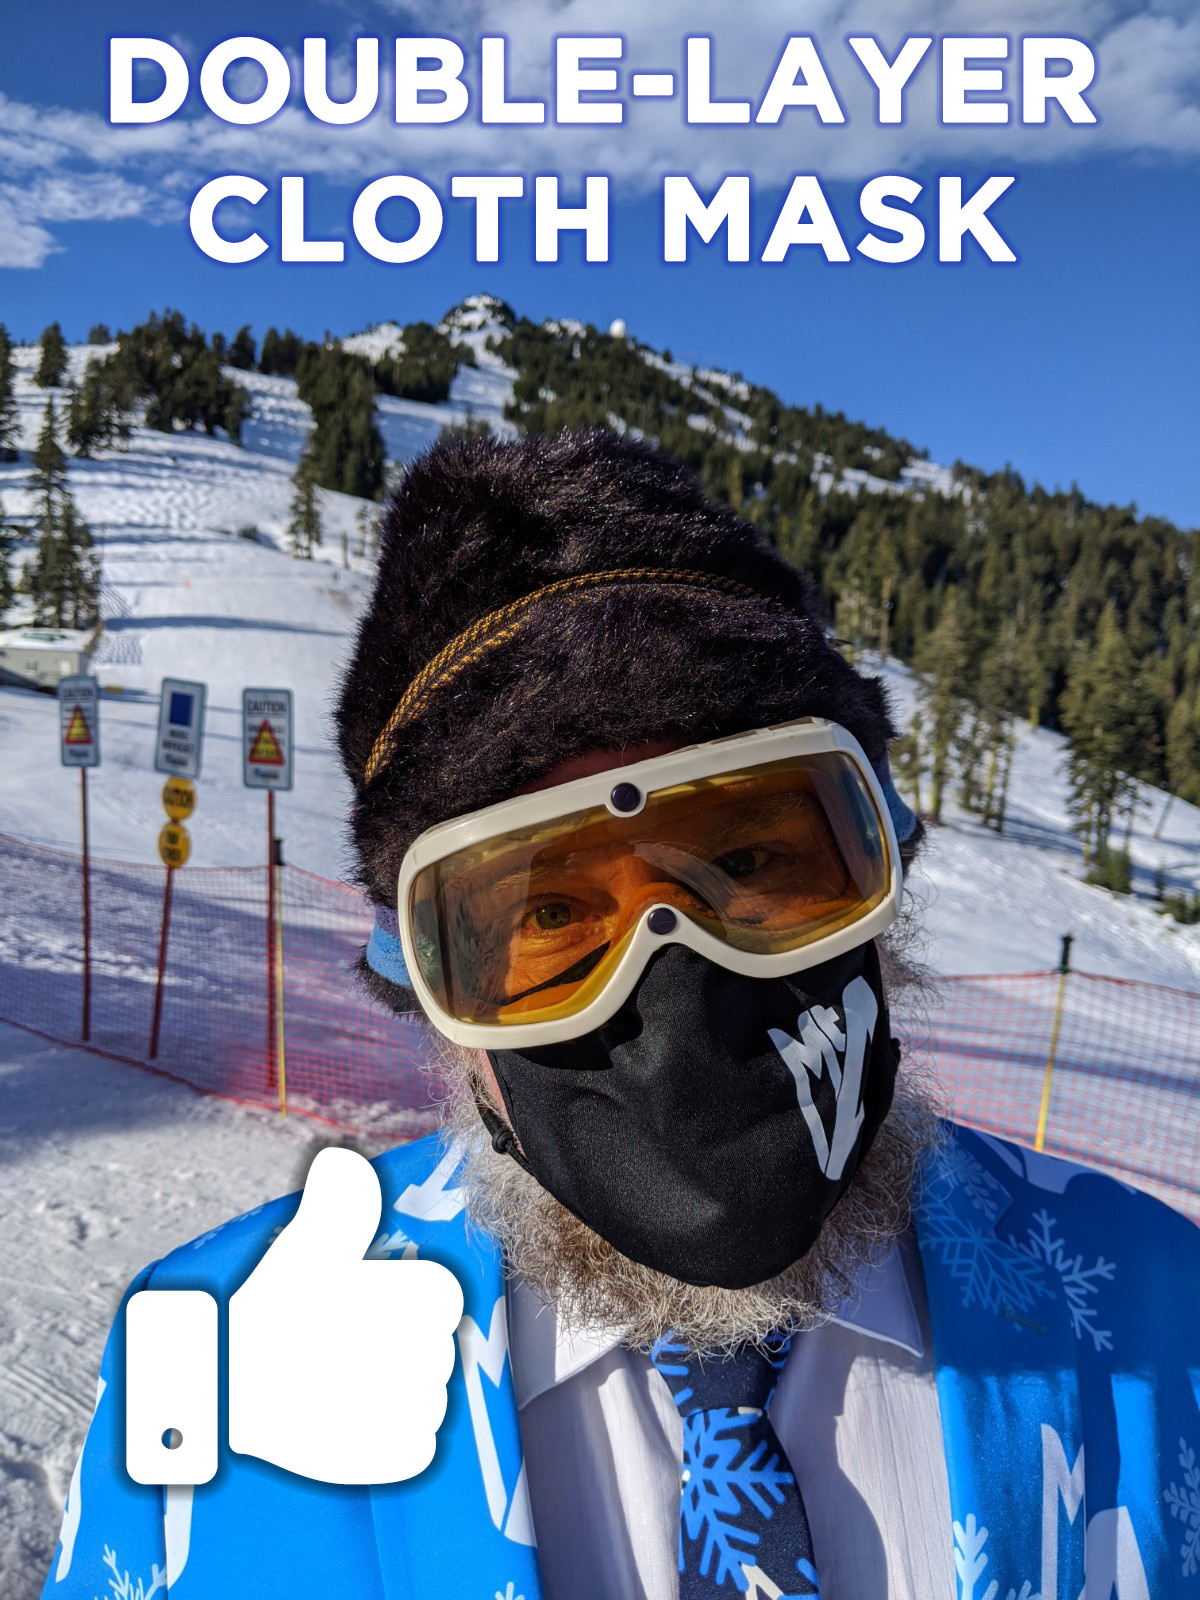 Double-Layer Cloth Mask - Thumbs Up!